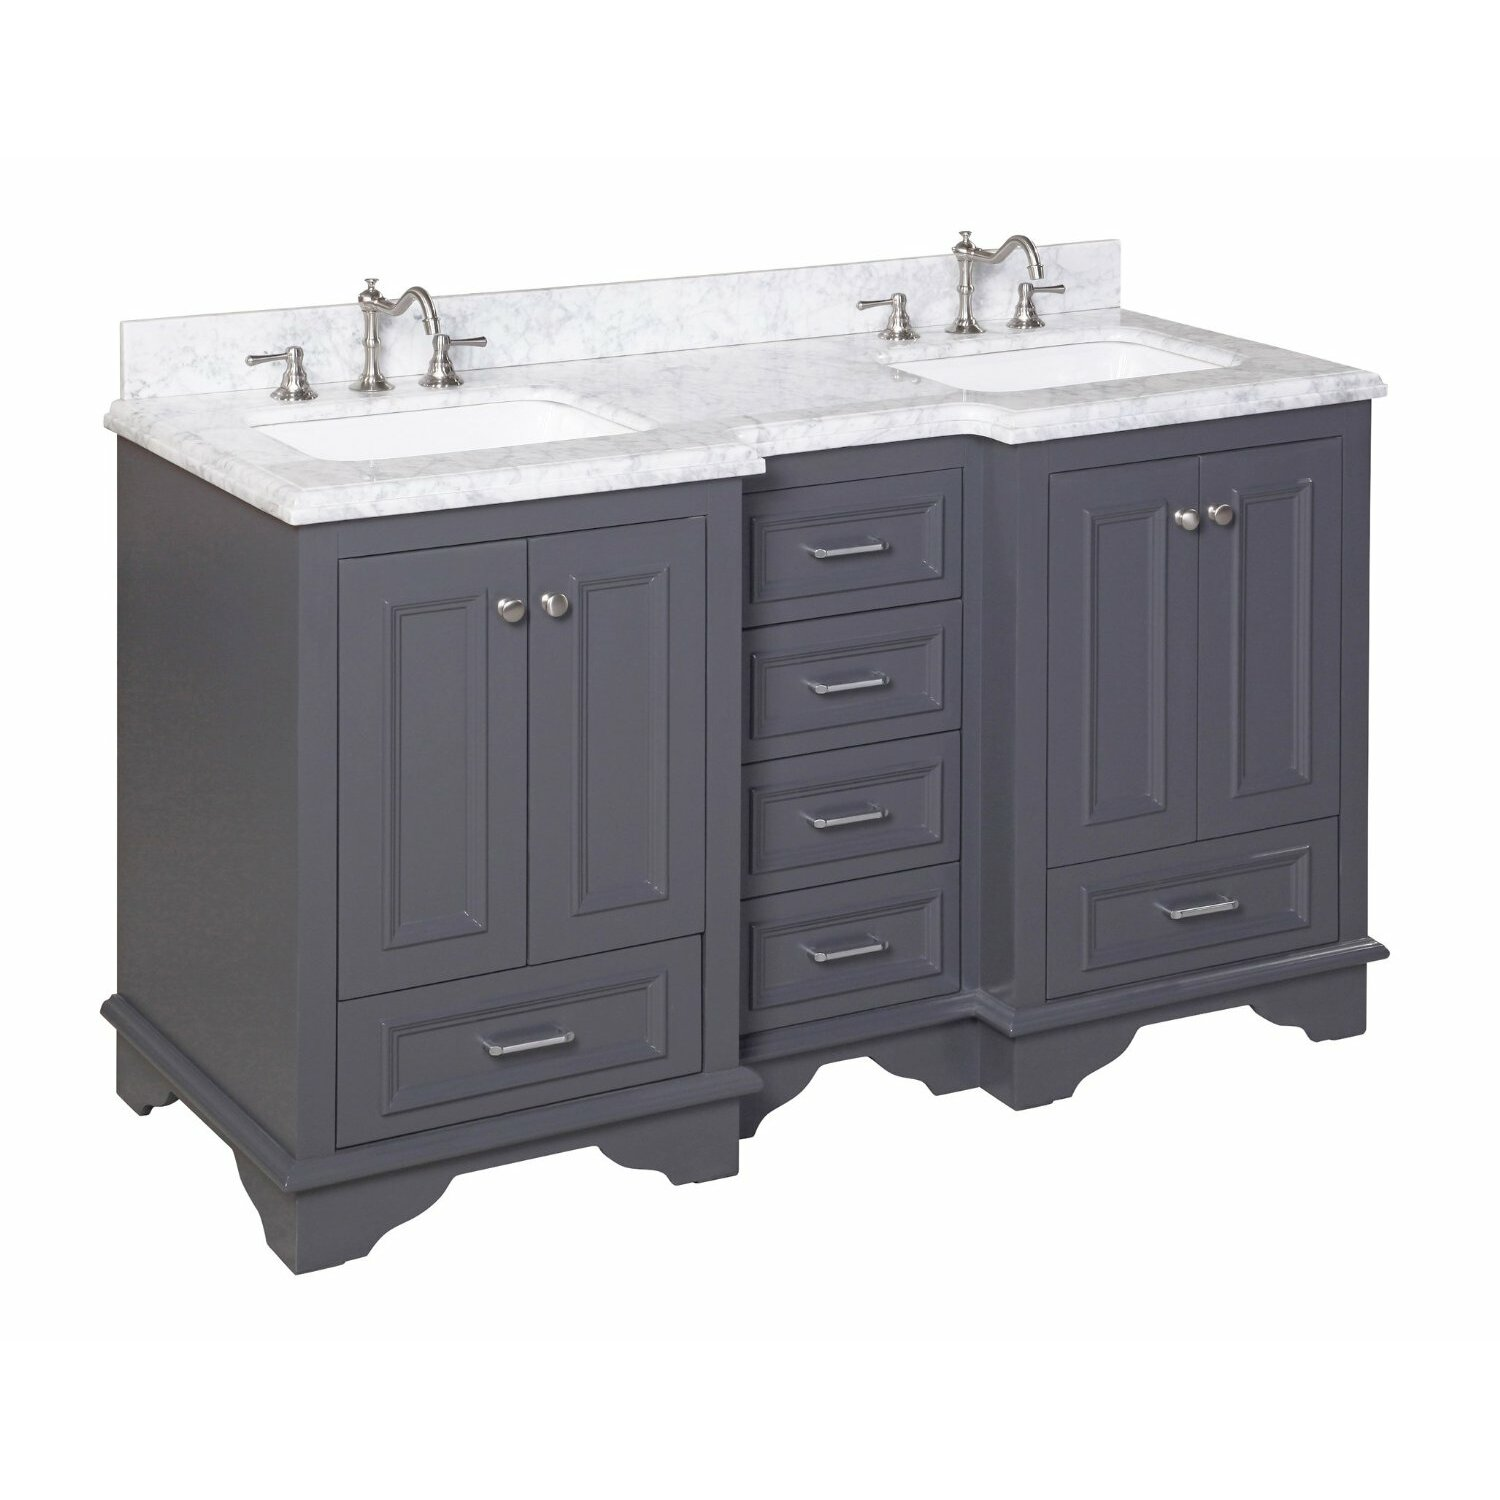 Kbc nantucket 60 double sink bathroom vanity set reviews wayfair Bathroom sink and vanity sets